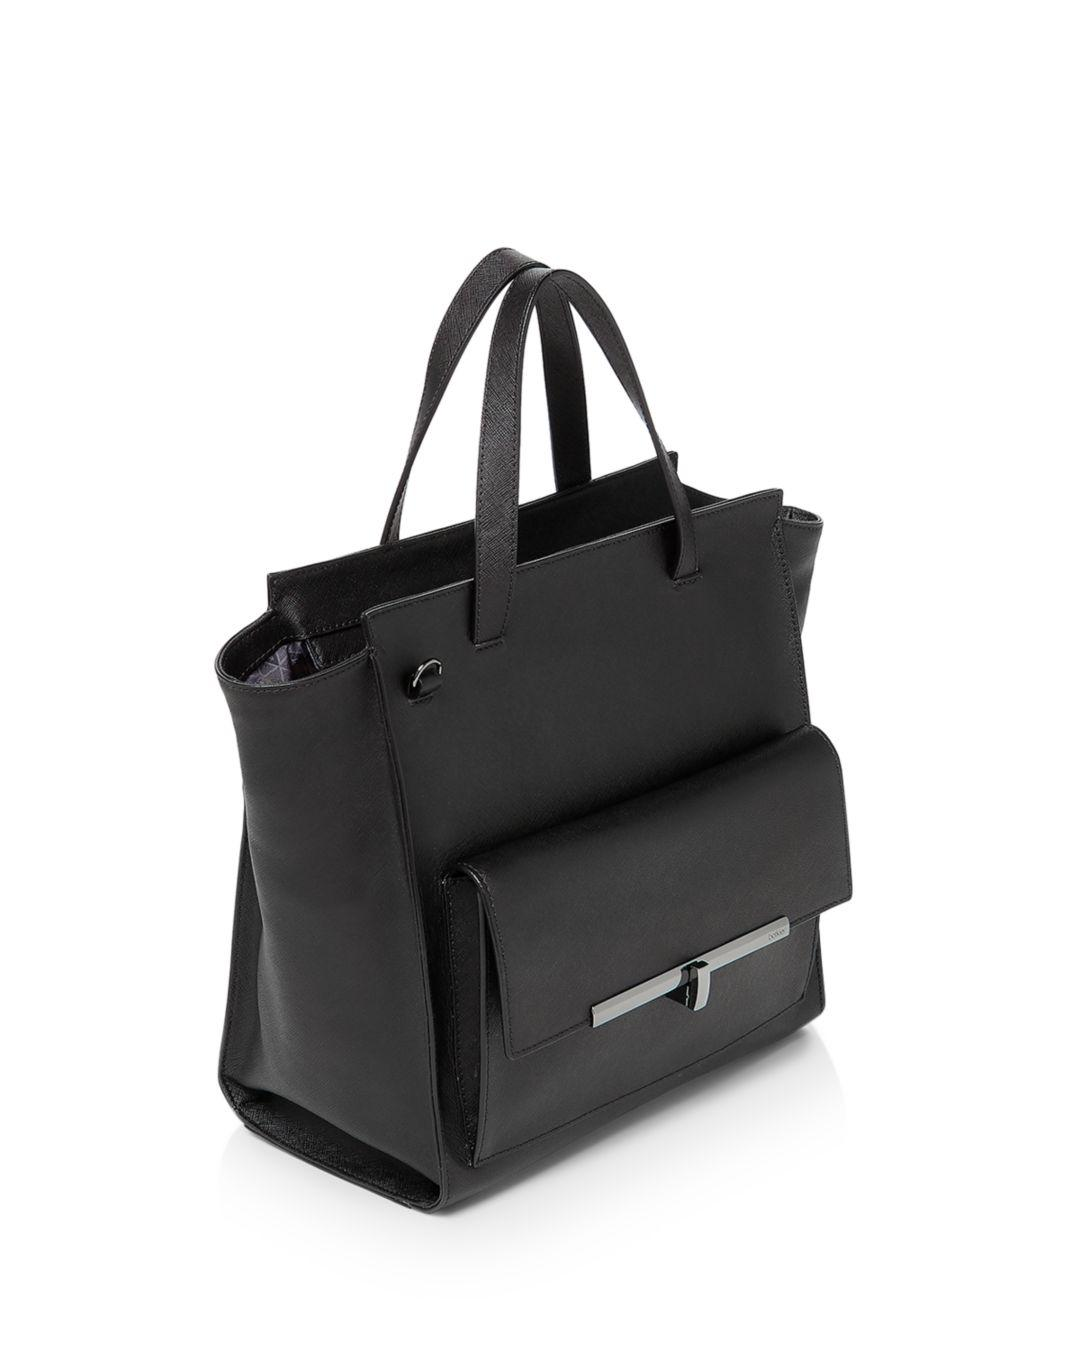 Botkier Leather Jagger Tote in Black